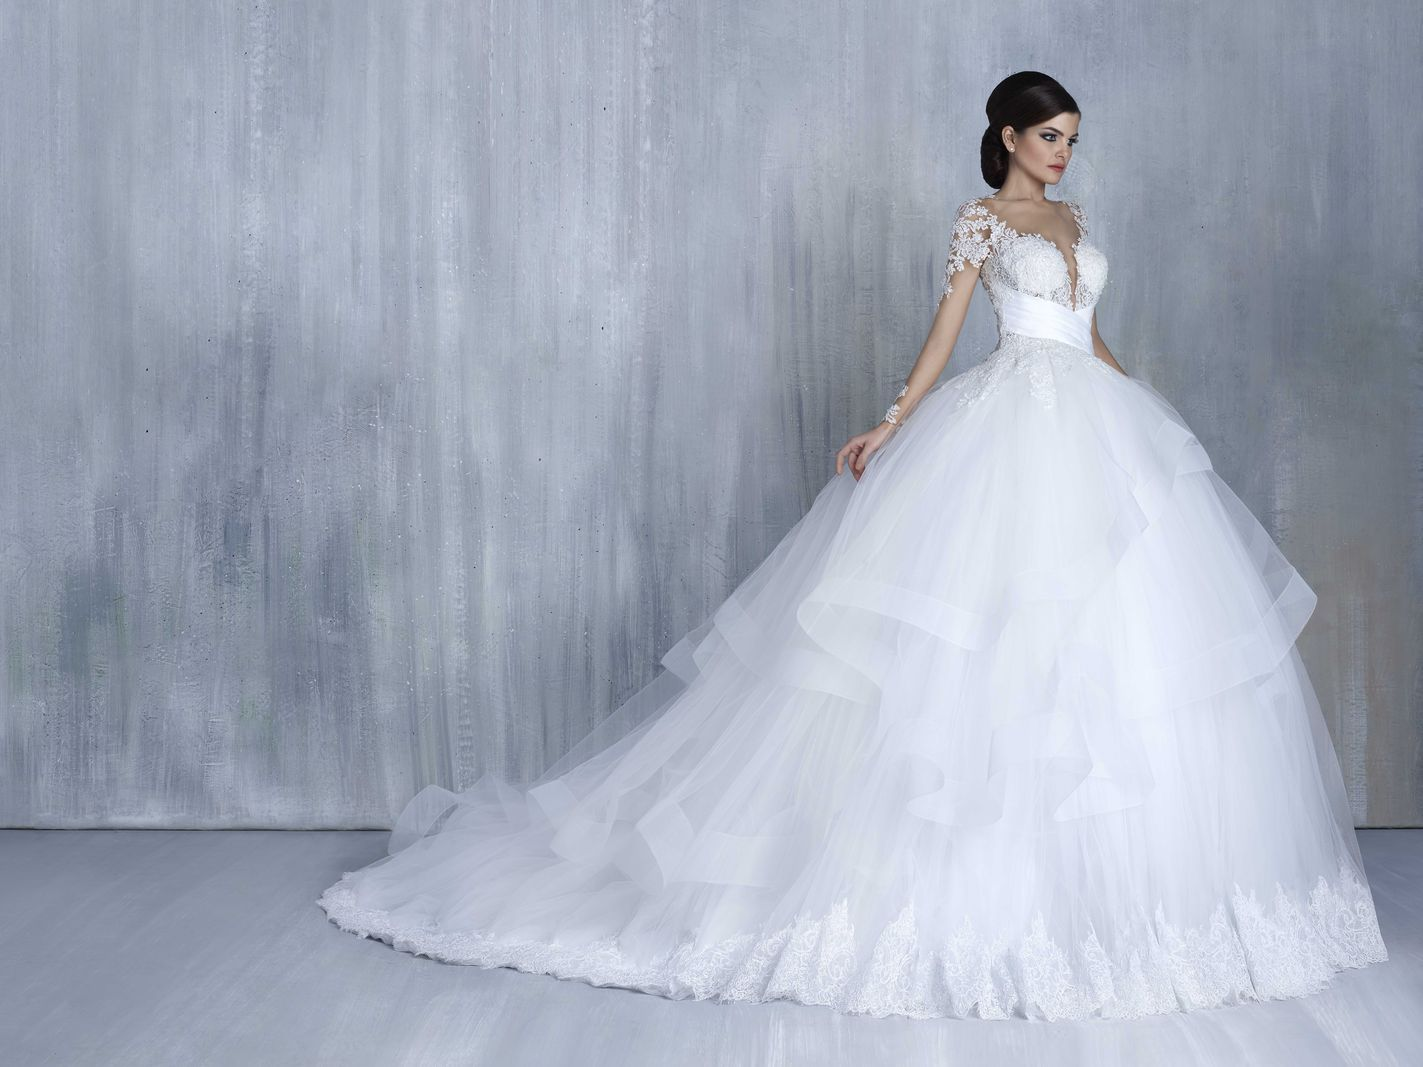 Most elegant wedding dresses and bridal gowns available at Beirut (Lebanon). Classic and trendy bridal dresses and wedding gowns at an affordable prices.